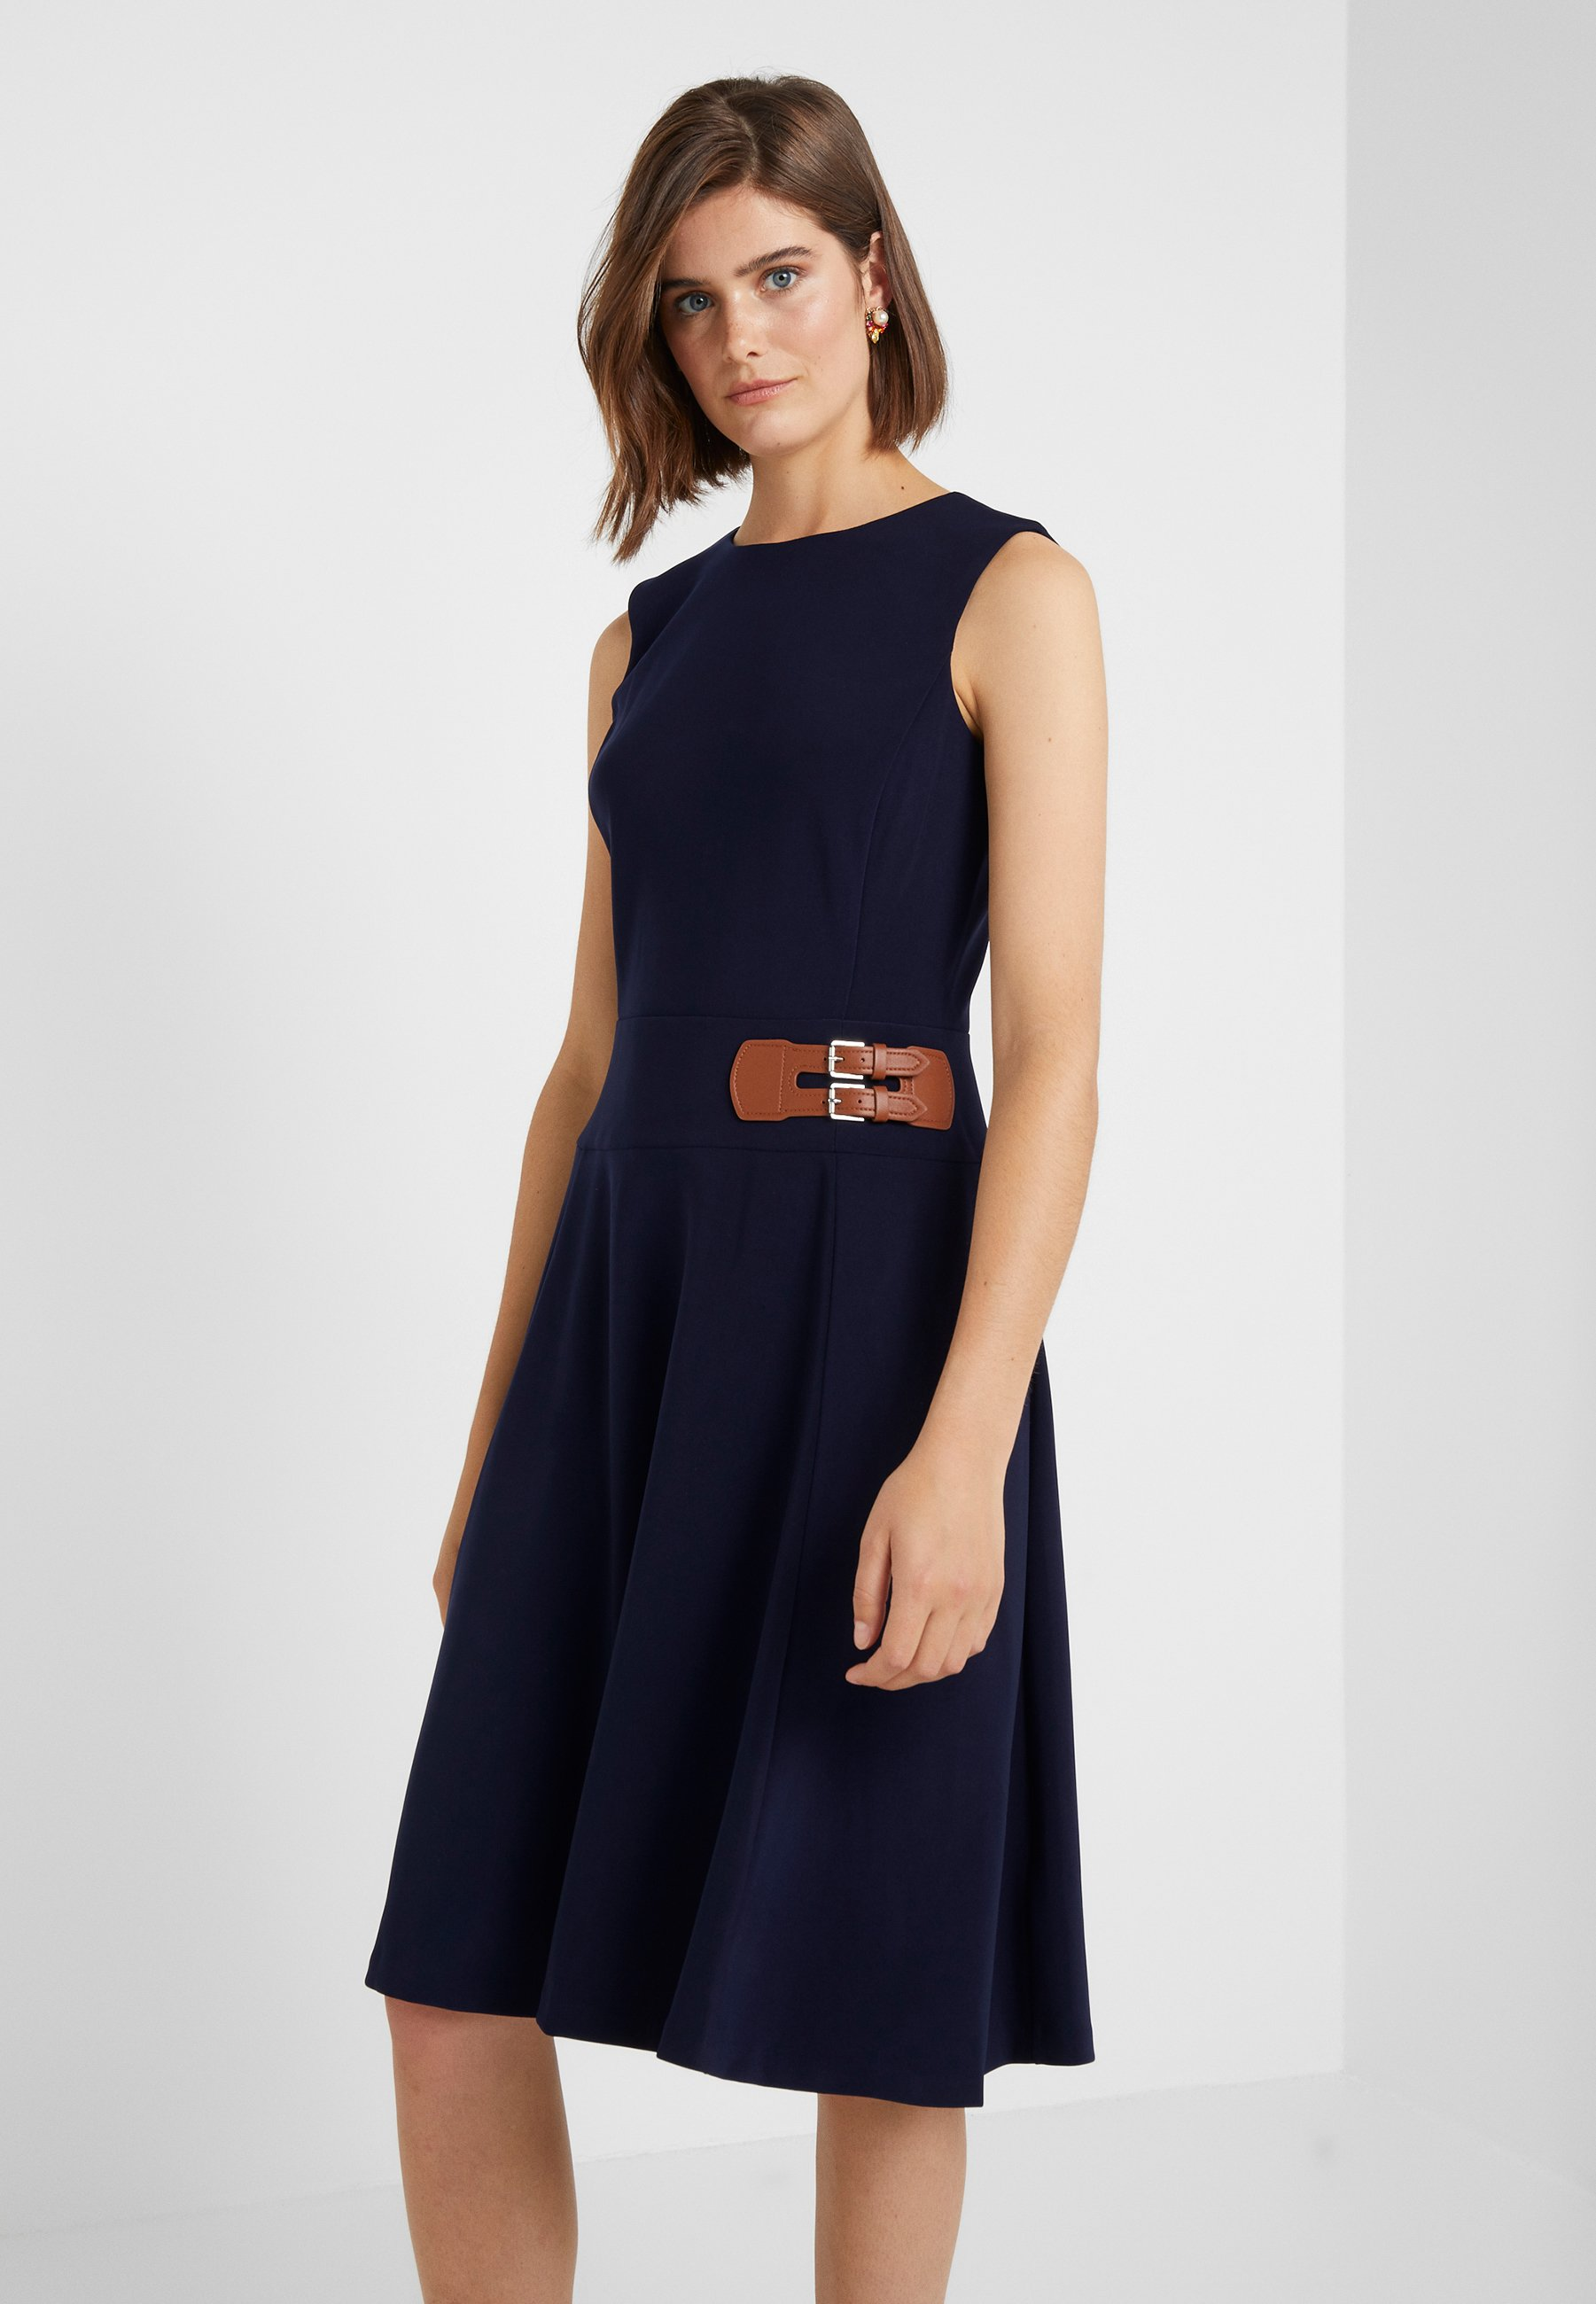 En Jersey Lighthouse Bonded Navy Lauren Ralph TrimRobe Dress YWEDH2I9